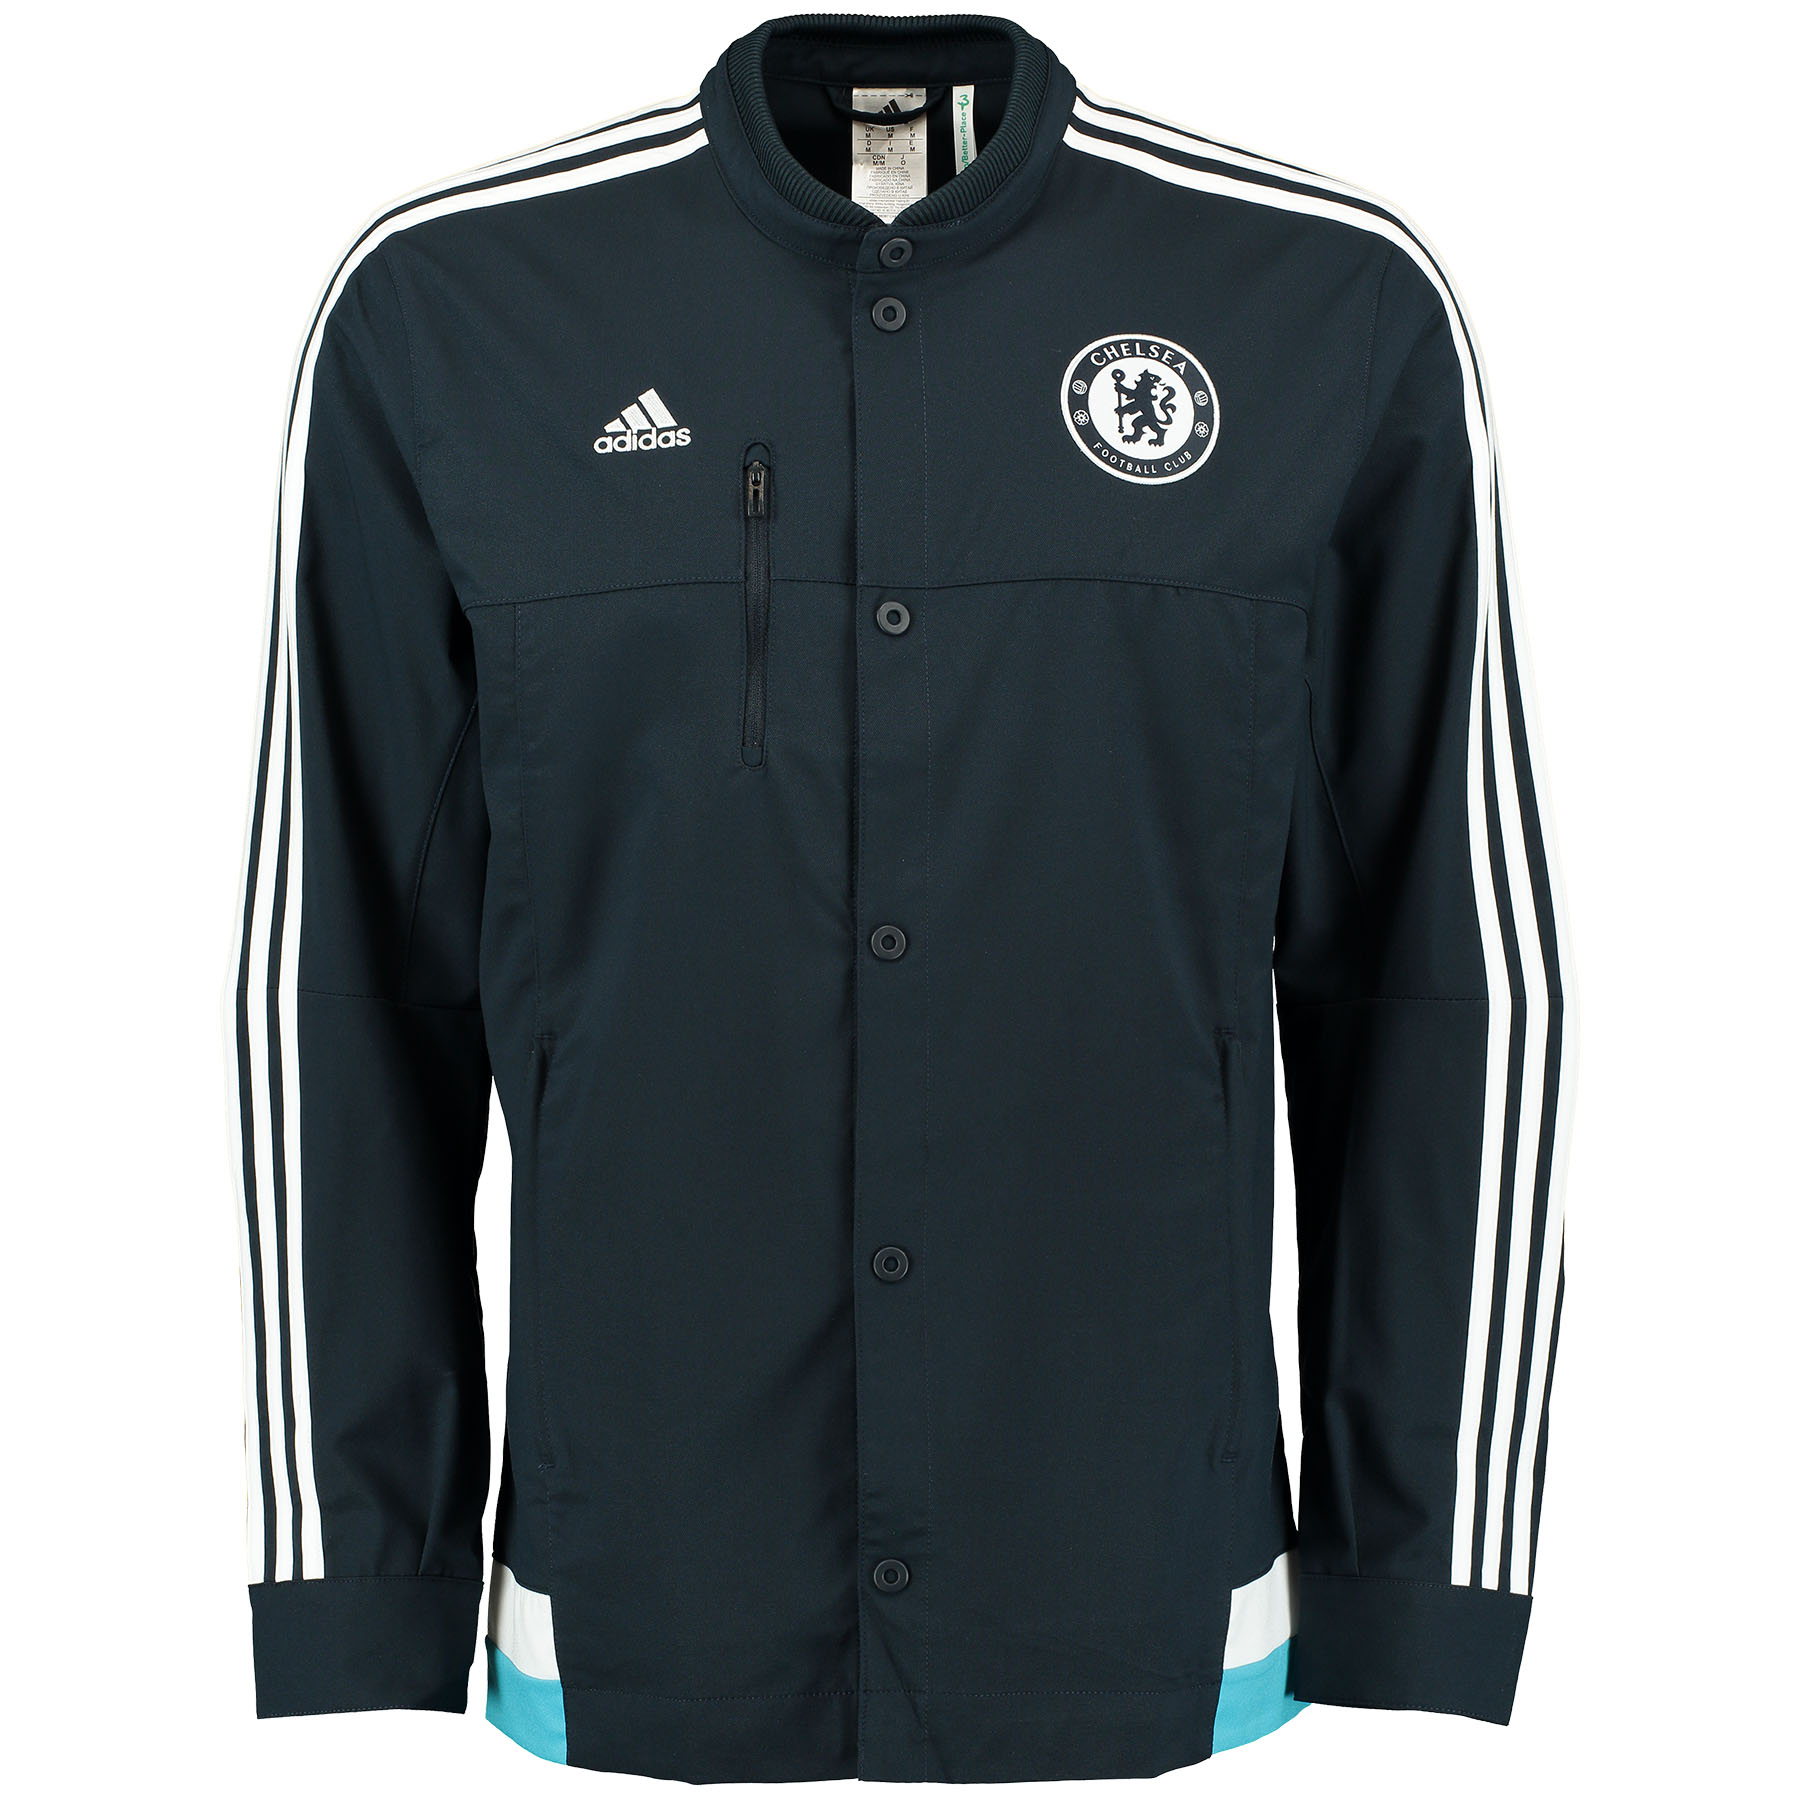 Chelsea Anthem Jacket - Kids   The match doesn't stop for The Blues when the temperatures drop. Young fans can cut the chill in the Chelsea Anthem Jacket! The stand-up collar helps to keep out the draft and the Chelsea FC crest sits above the heart so young players can show their support wherever they go. Benefits of this Chelsea Kids Anthem Jacket •Built to block out the draft •adidas three stripe logo on chest •Chelsea FC crest on the chest